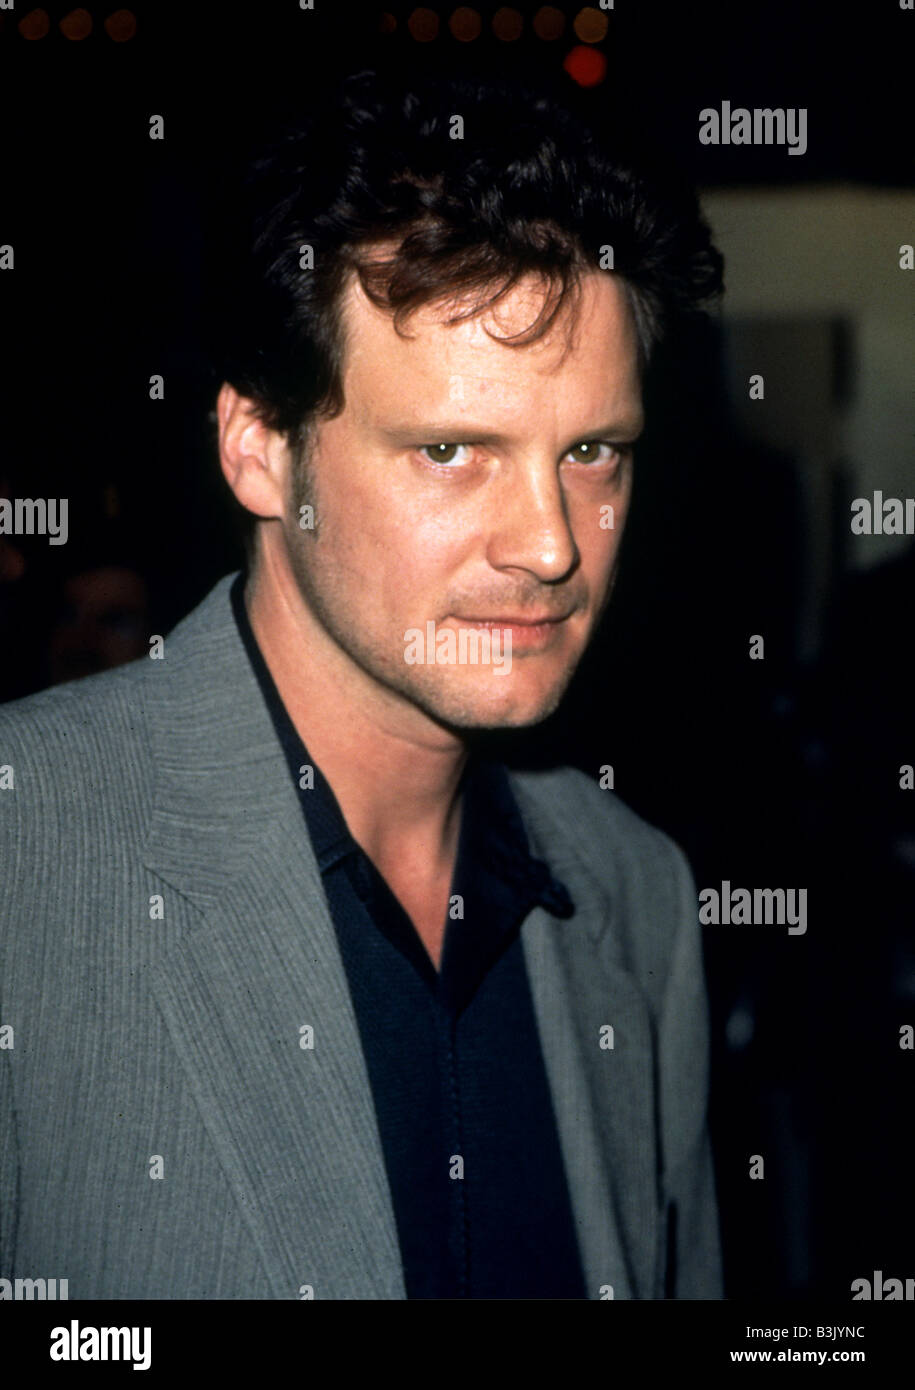 COLIN FIRTH  UK film actor in 2006 - Stock Image